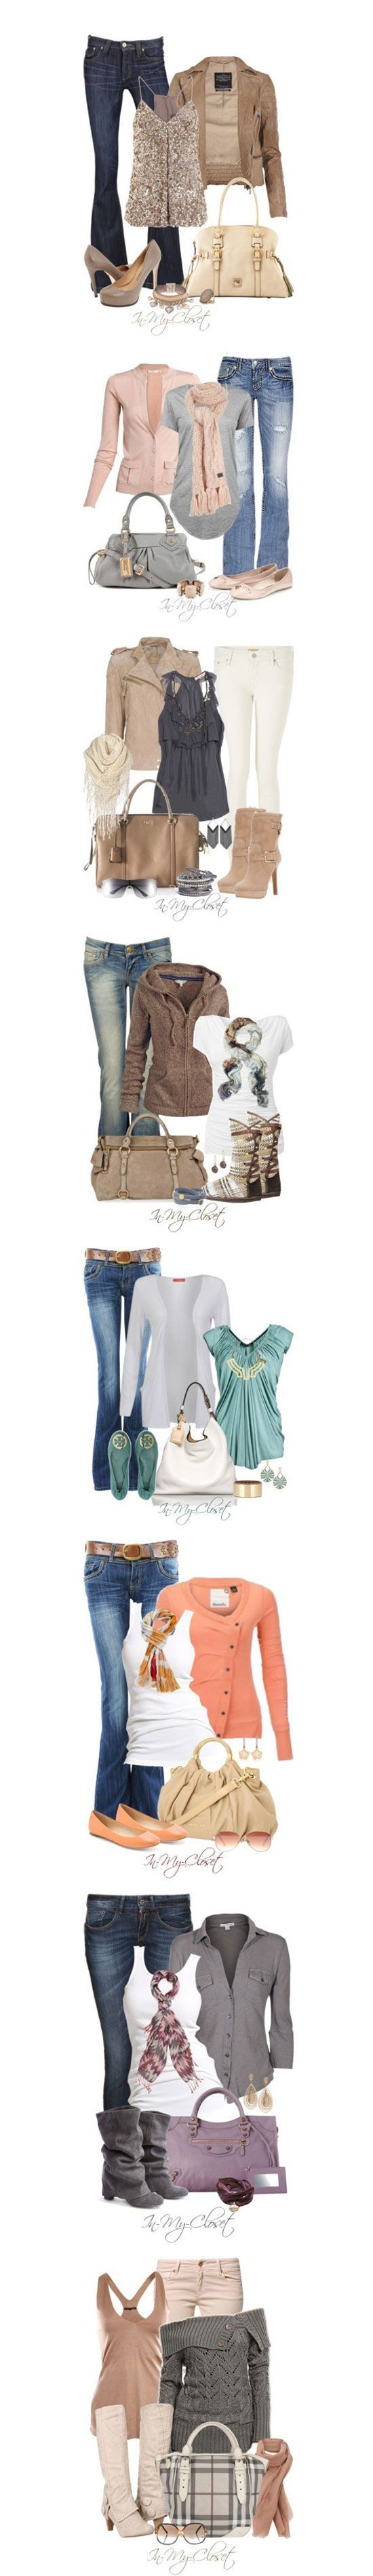 Pin by Deepthy Varghese on My Style